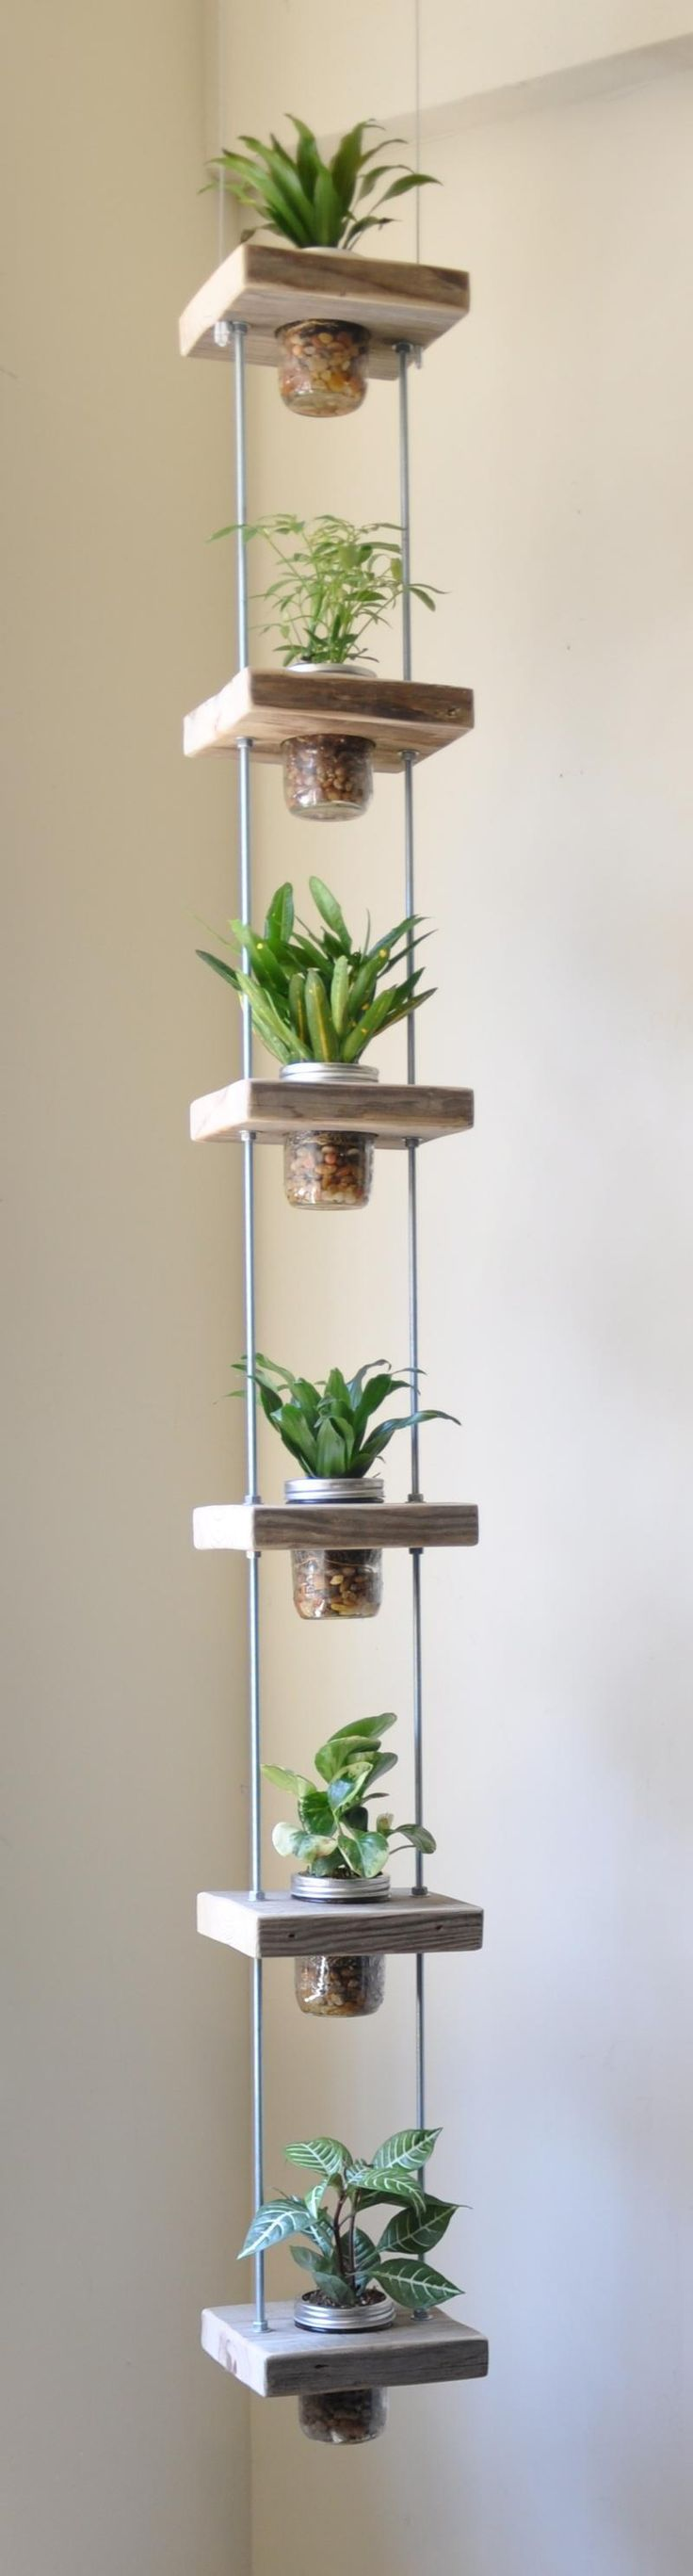 7 hanging planters to green up small spaces. Designer Hanging Planter via @earthminded-style